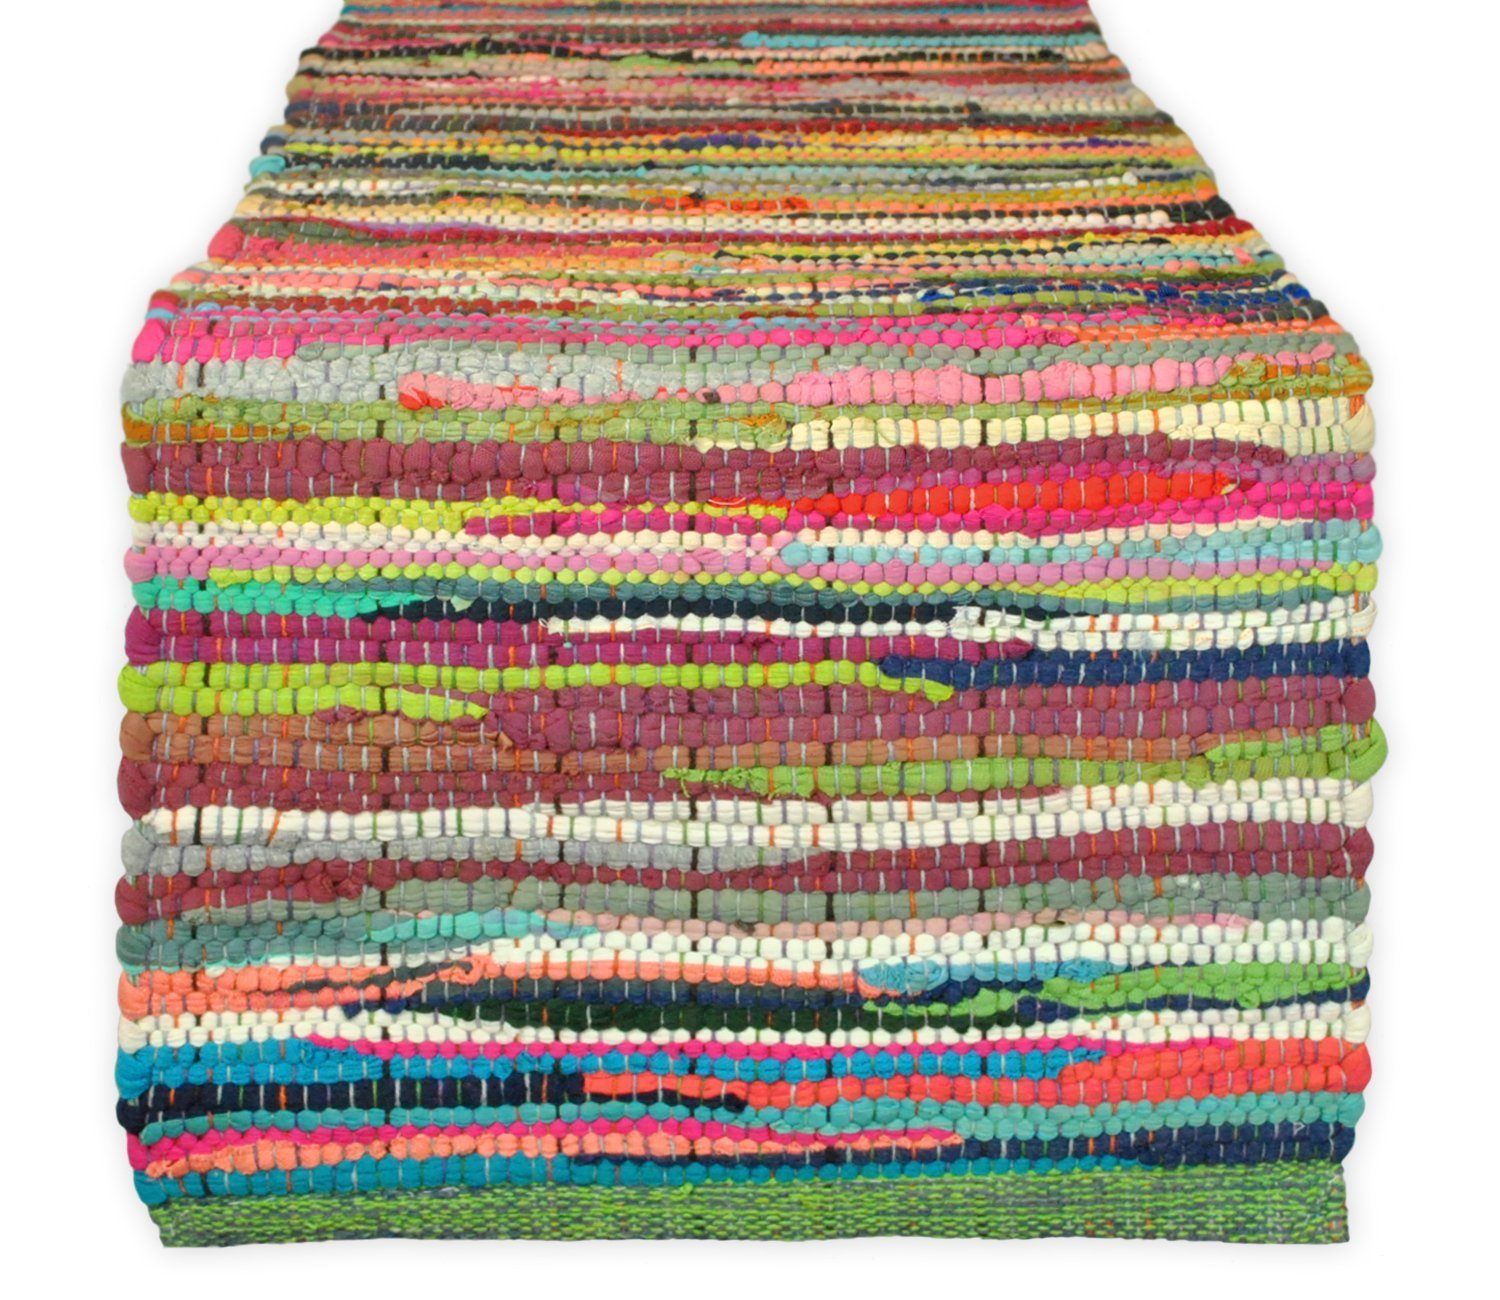 Cotton Craft - Hand Woven Reversible Cotton Multi Chindi Braid Table Runner - 14x72 Inches - This Runner is made from multi color re-cycled yarns, actual product may vary in color from the image shown